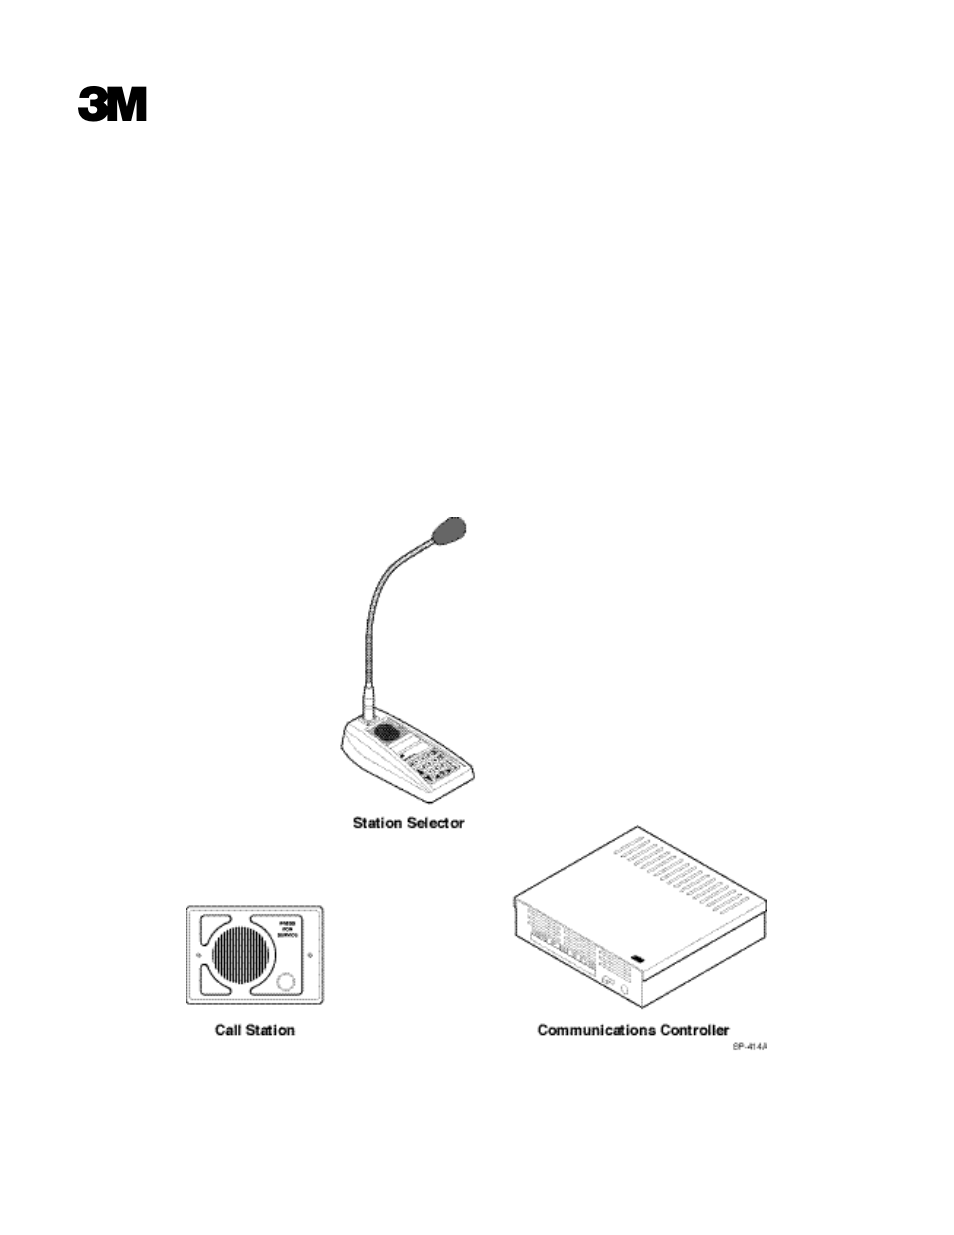 3m Intercom Wiring Diagram Trusted Diagrams D 2400 User Manual 26 Pages Ceiling Fan